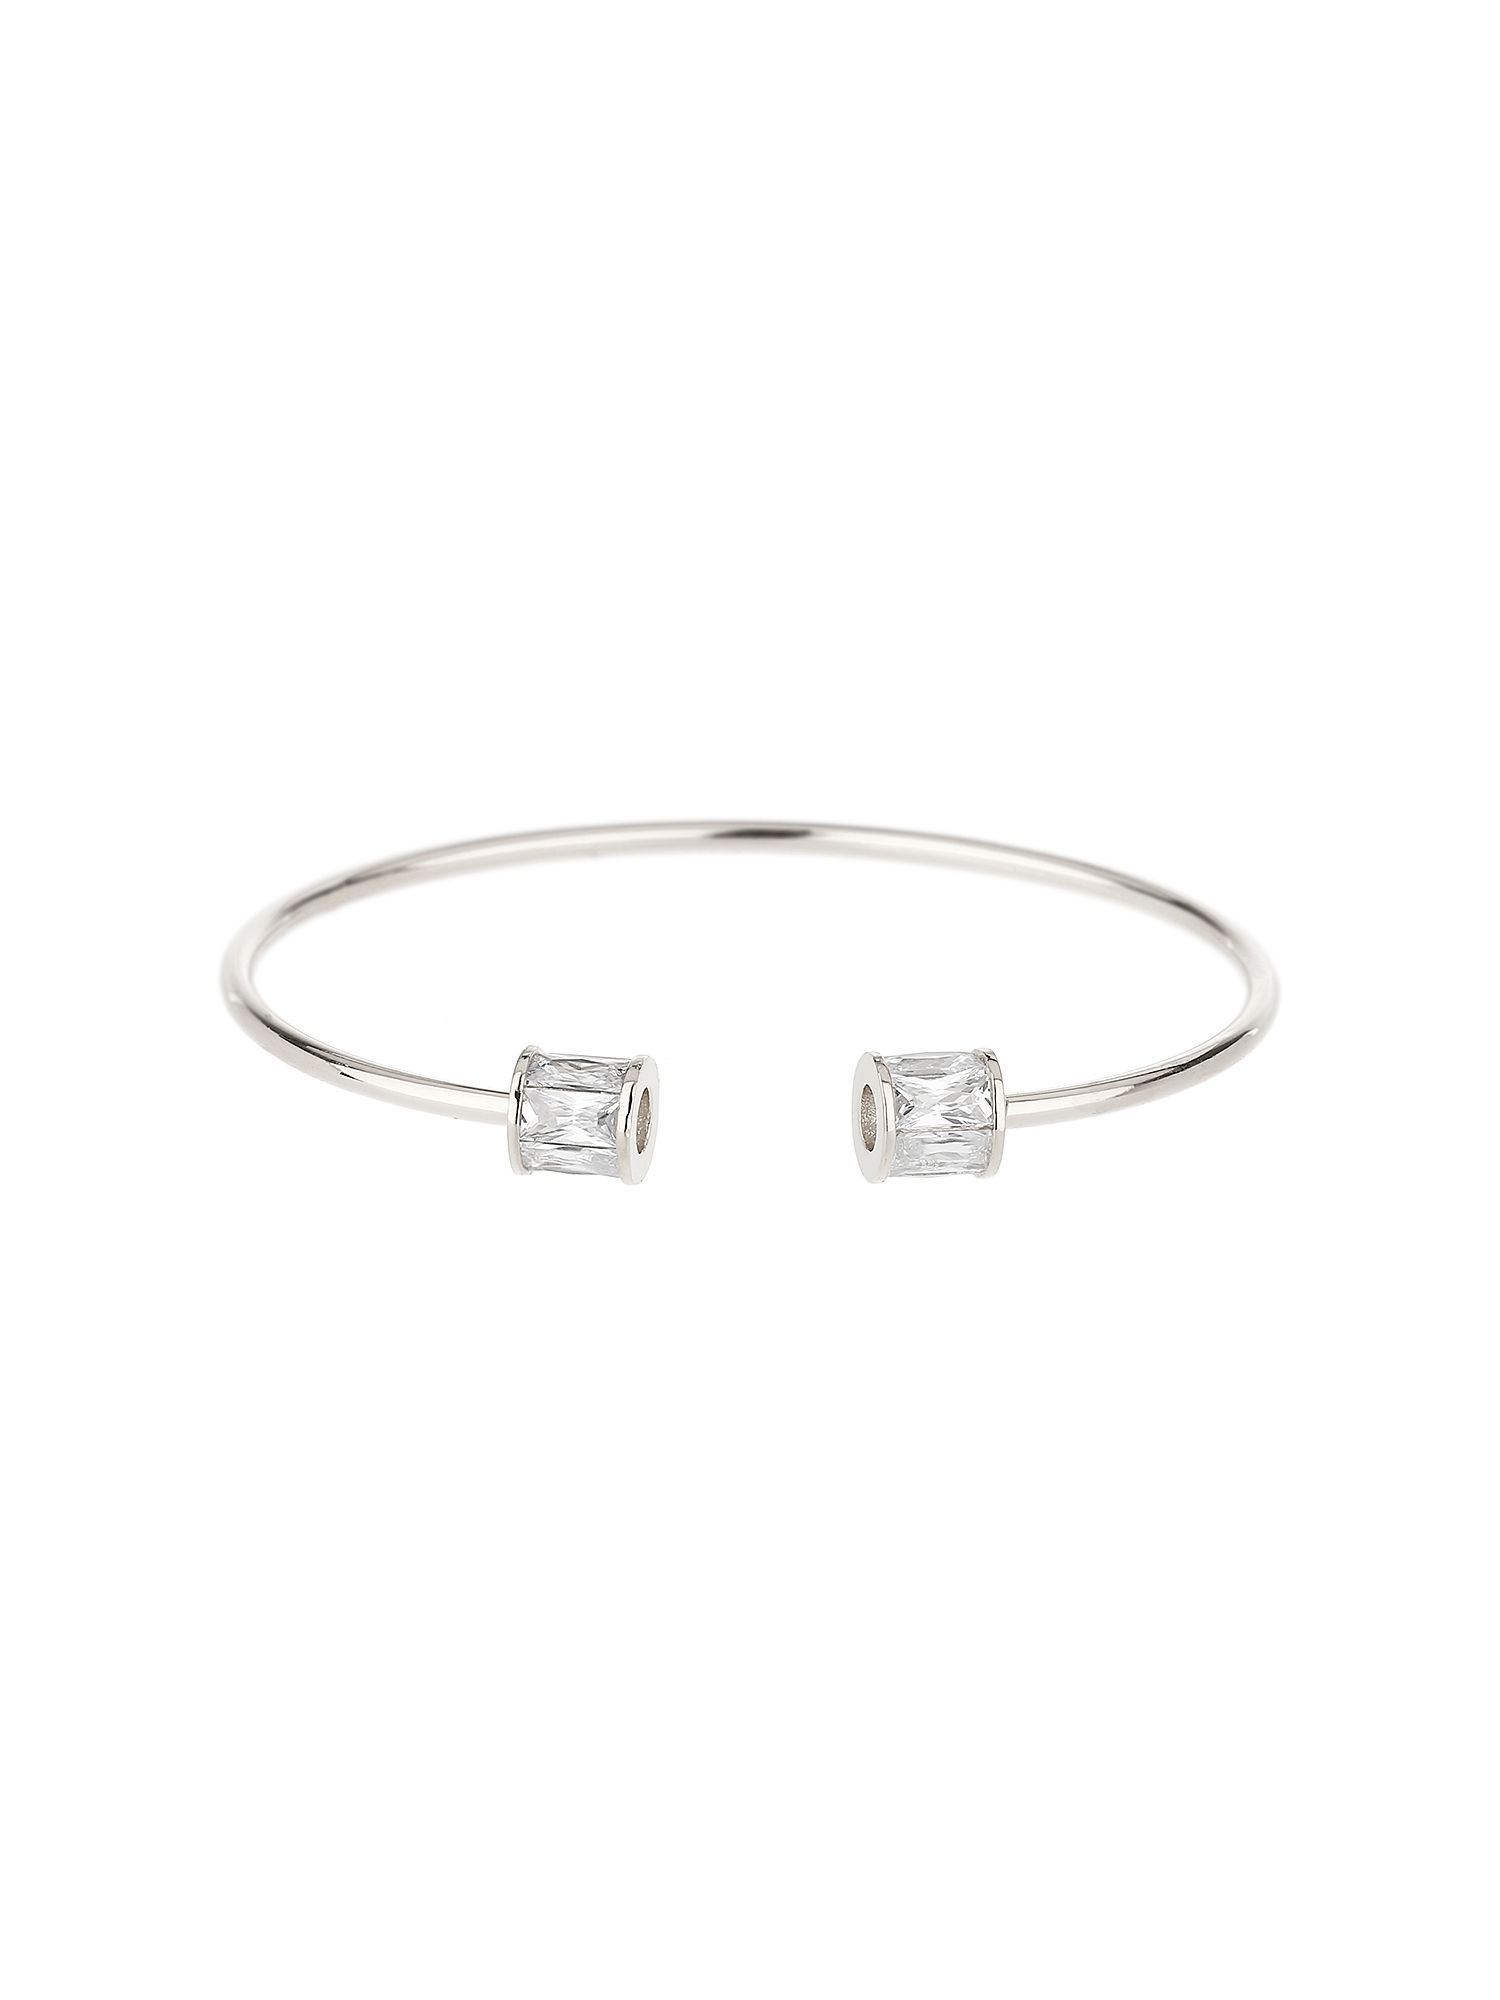 Mikey Baugette Bead End Cubic Cuff Bangle, White